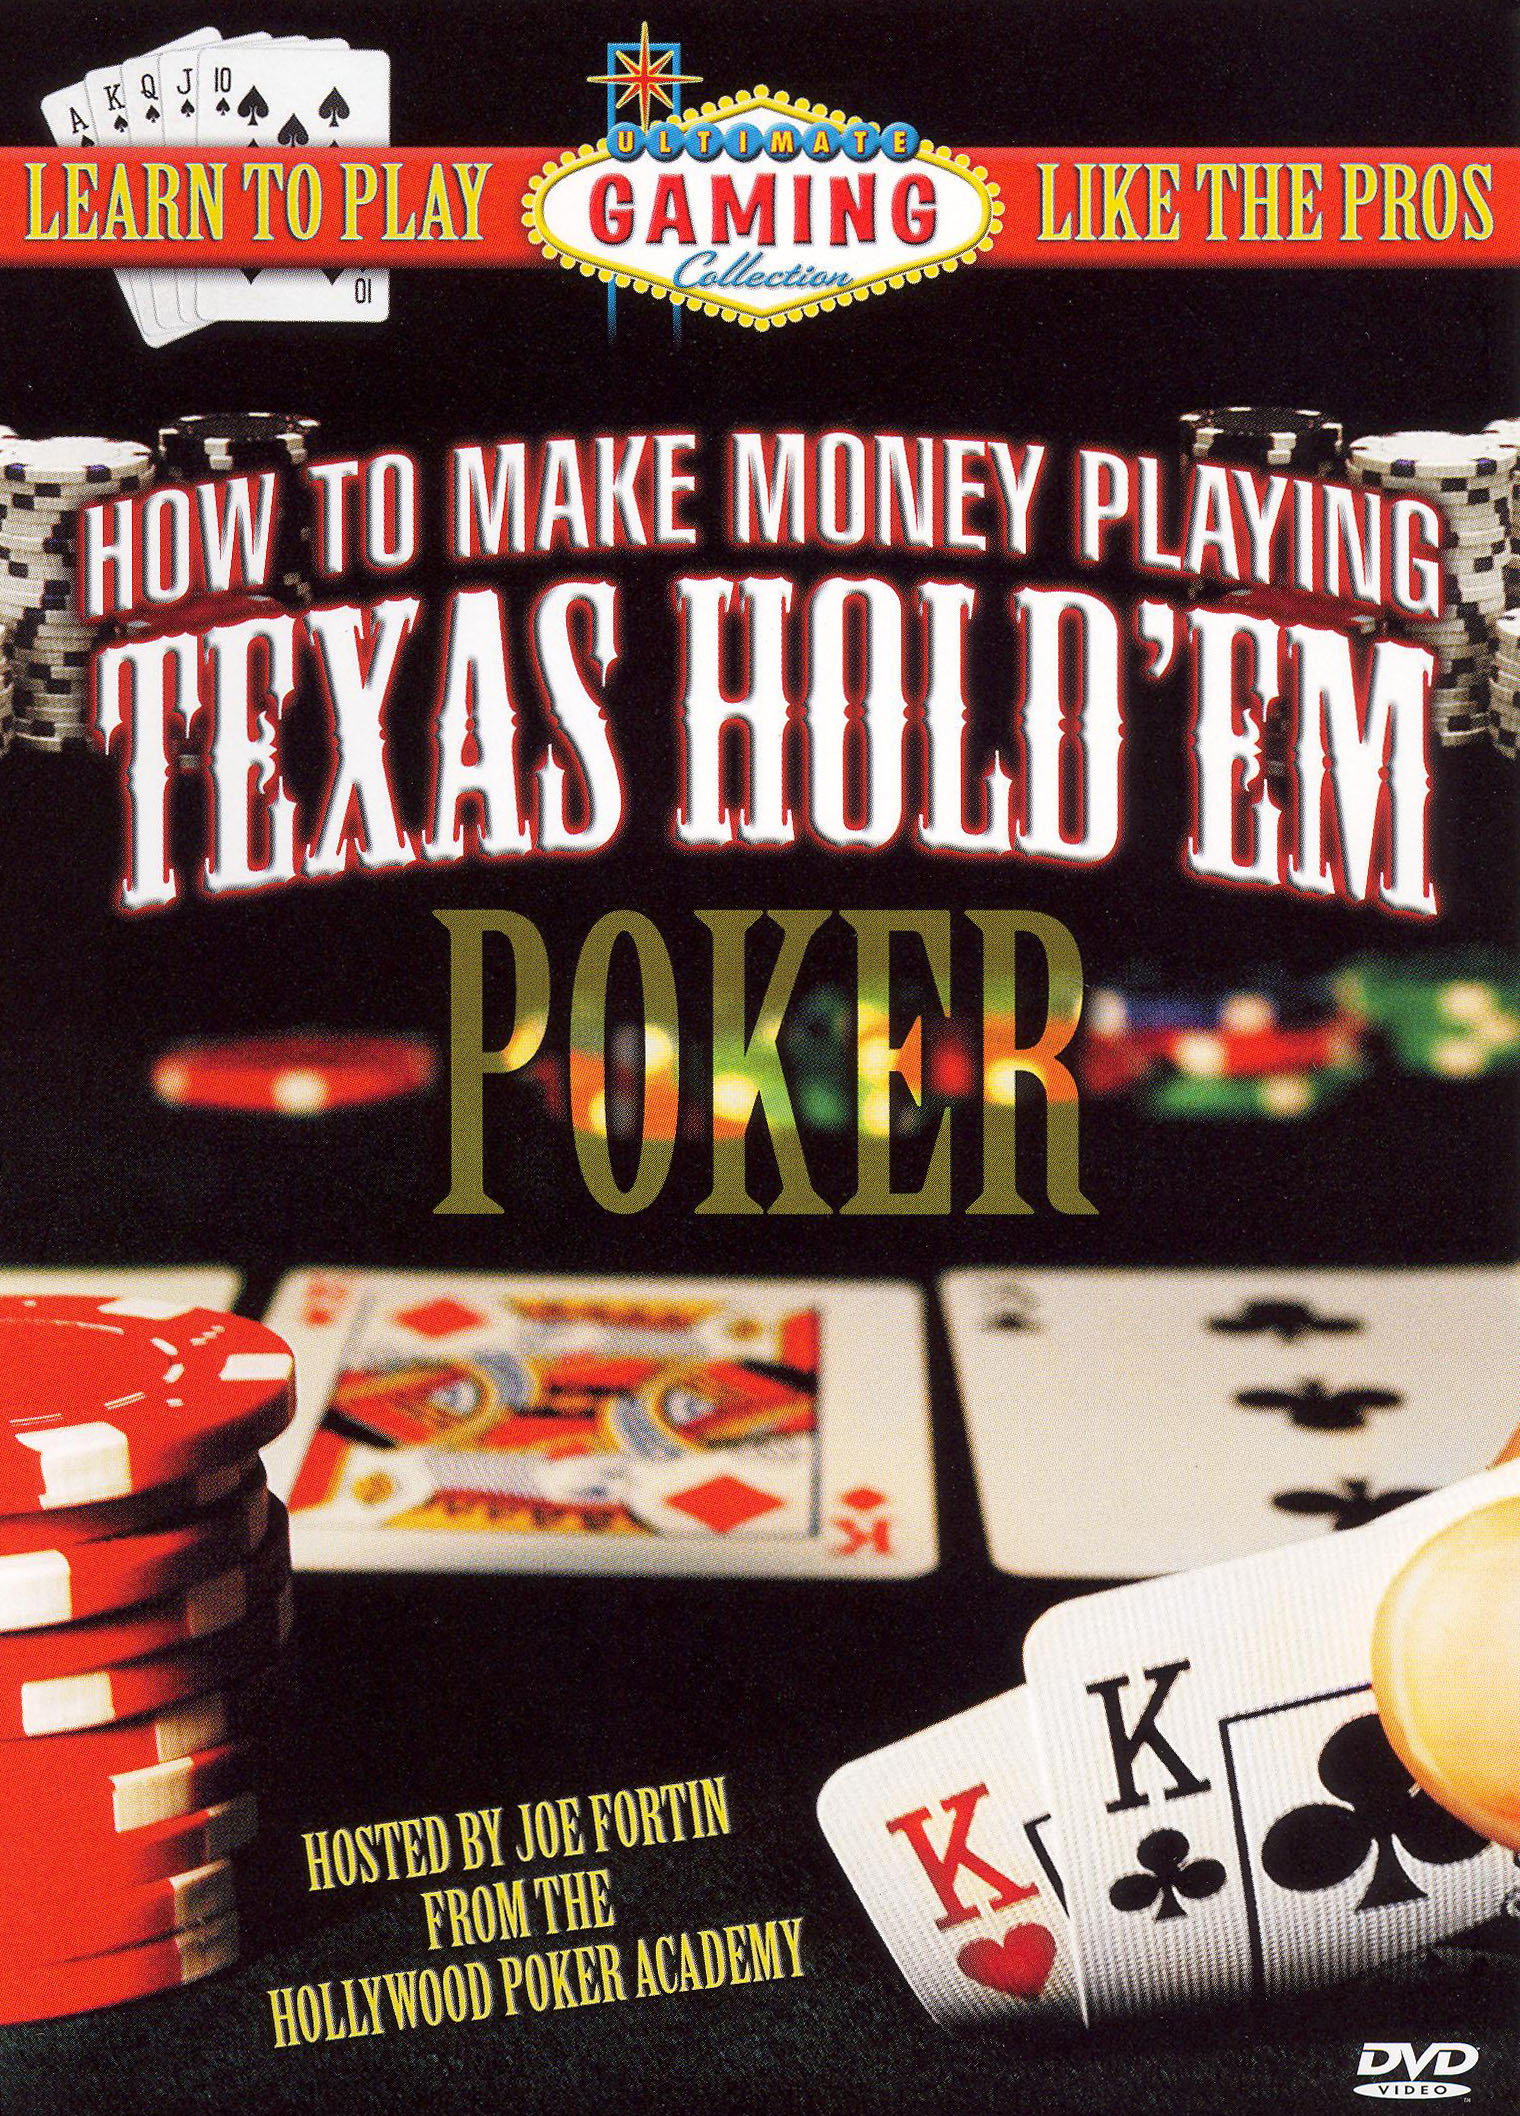 How to Make Money Playing Texas Hold'em Poker